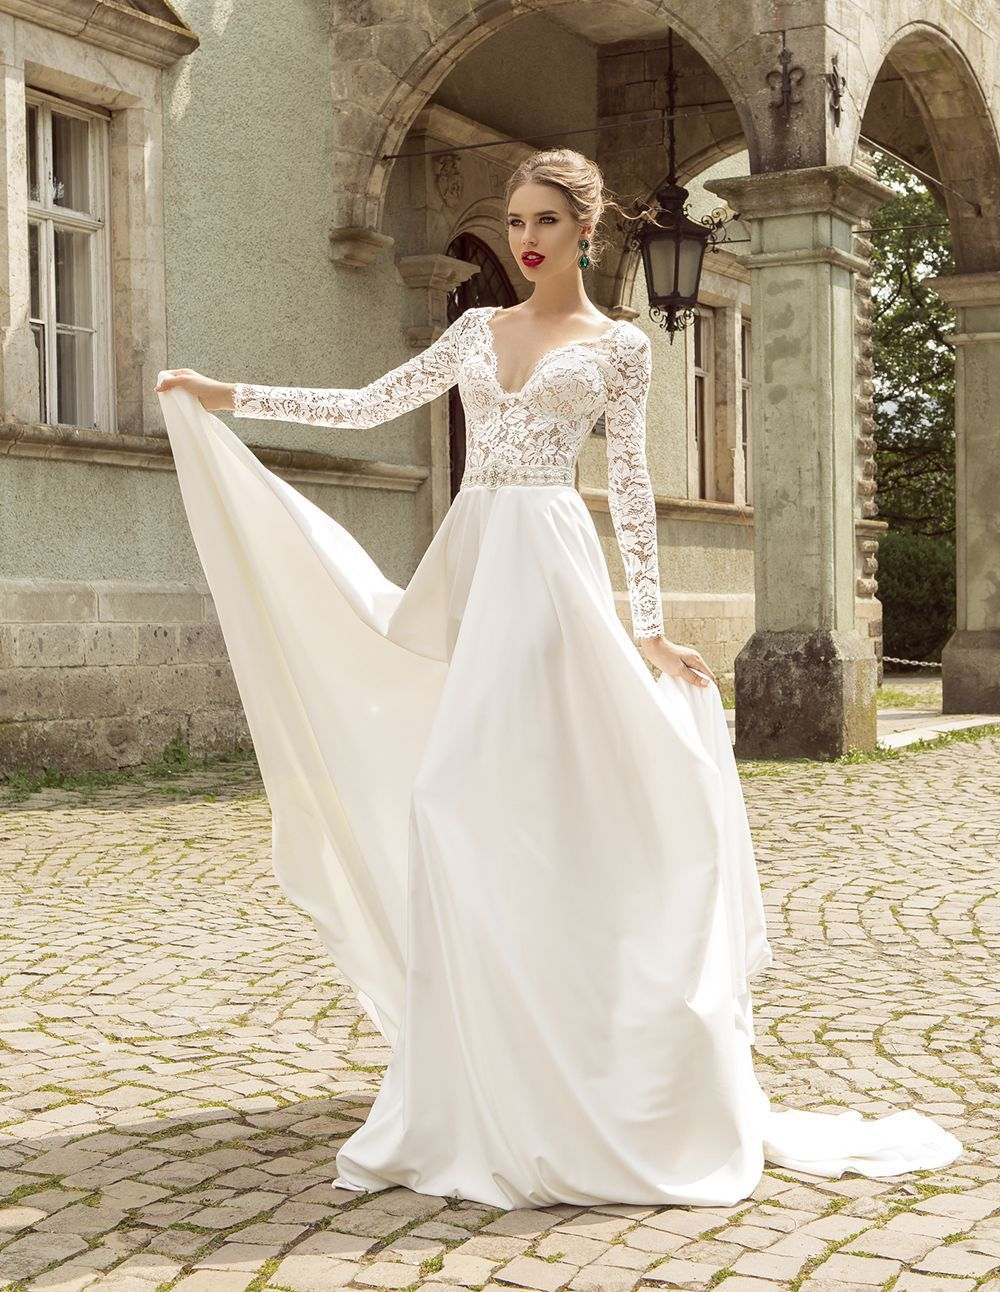 wedding dresses with sleeves Summer Style Lace Long Sleeve Wedding Dresses V Neck A Line Lace Wedding Dress Beading